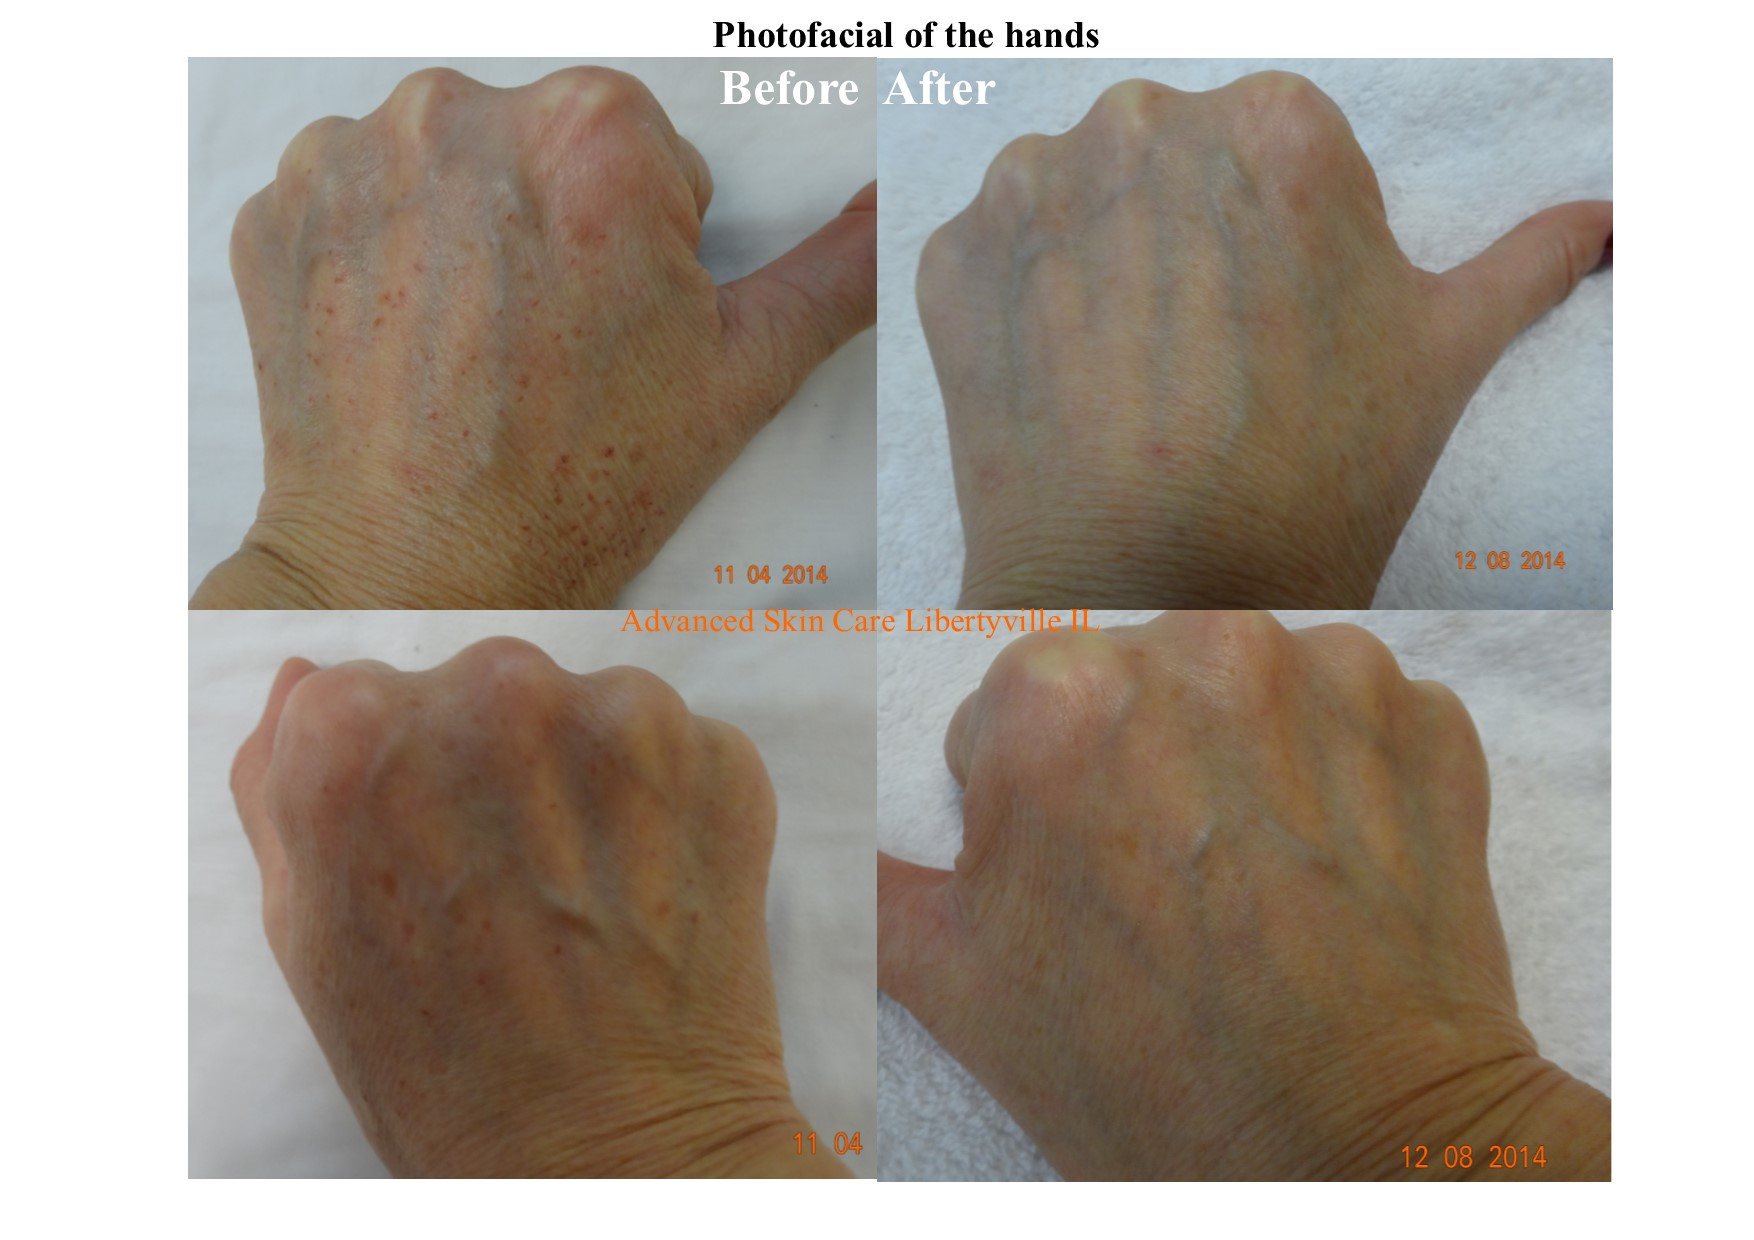 Photofacial before/after on hands